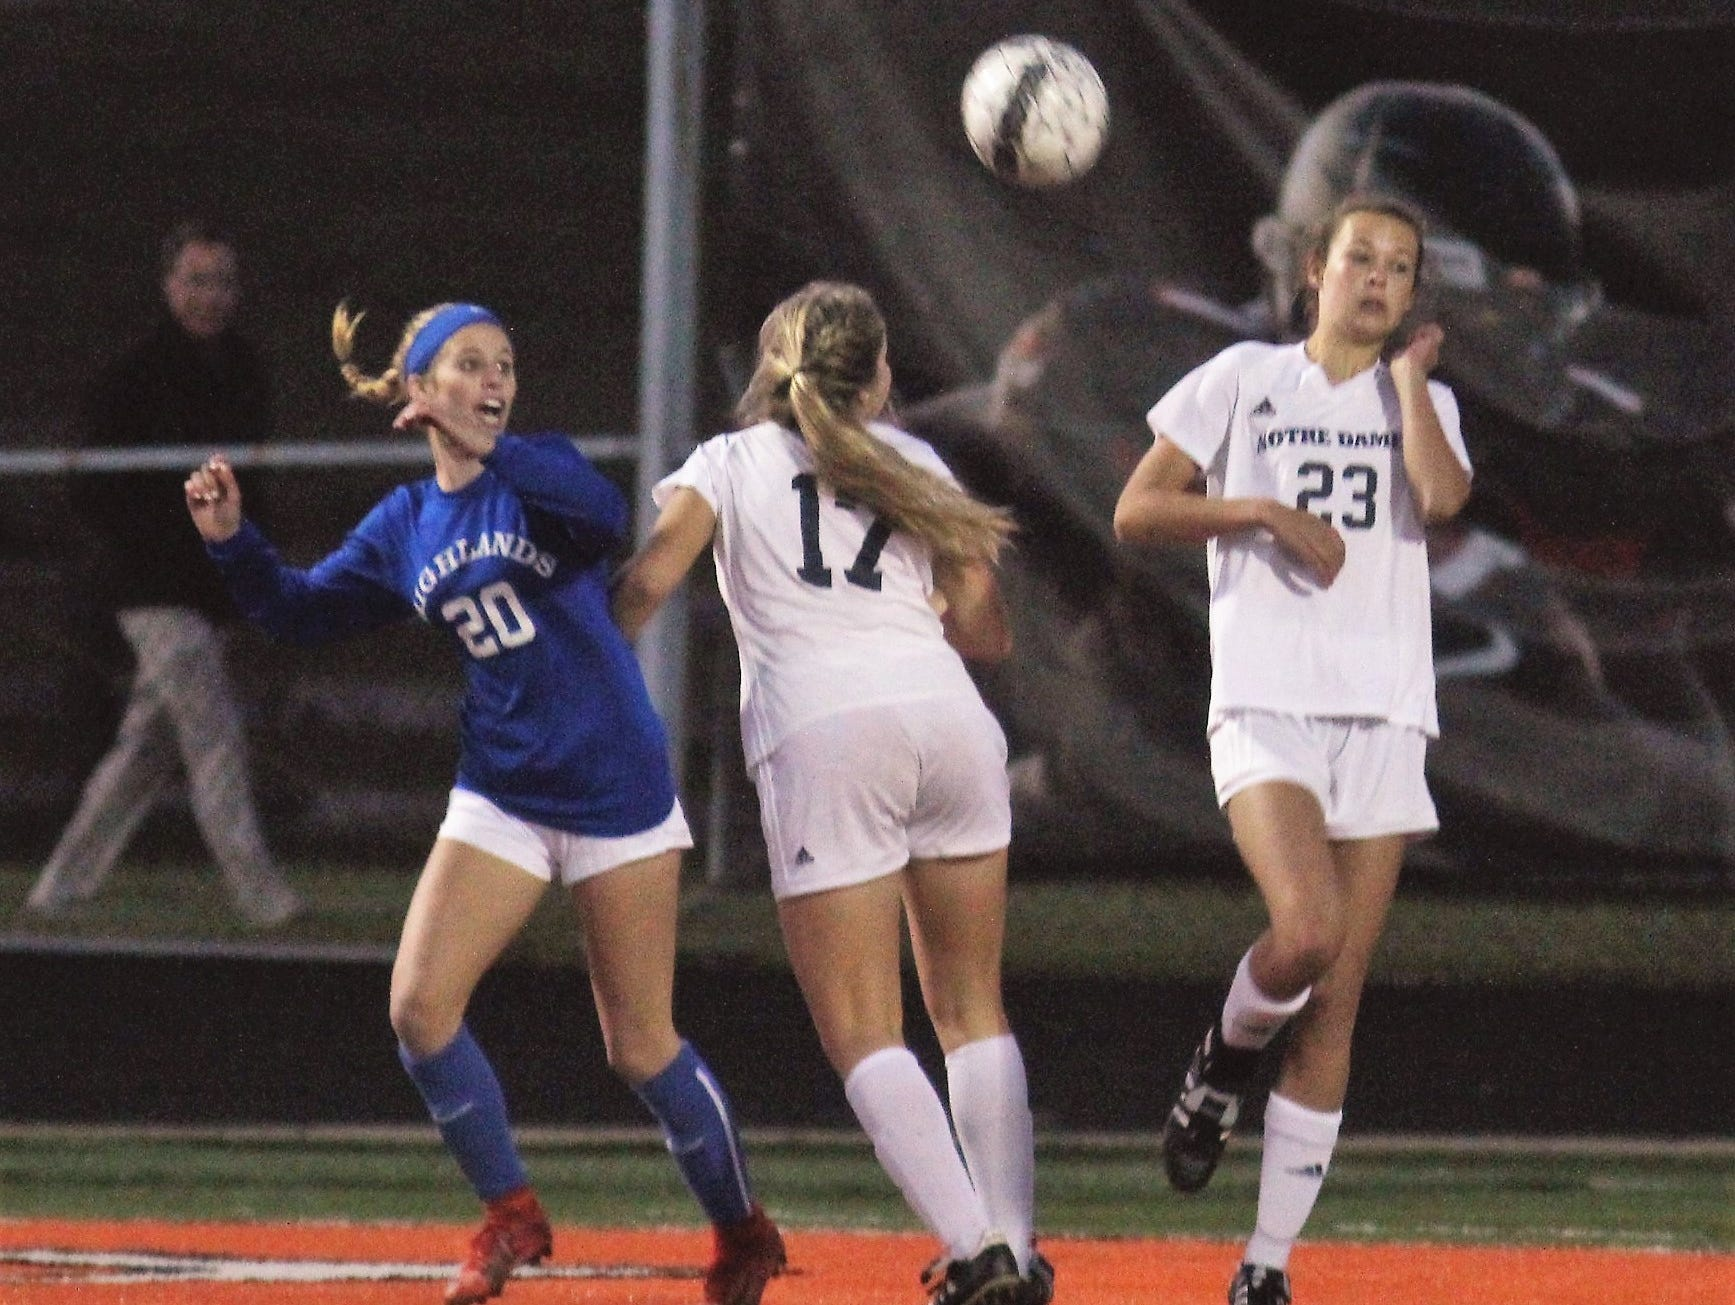 Highlands junior Maria Wiefering, 20,  battles for the ball with Notre Dame junior Ellie Hellmann, 17, and freshman Natalie Bain, 23, during Highlands' 1-0 win over Notre Dame in the 9th Region girls soccer championship game Oct. 18, 2018 at Ryle High School, Union, Ky.